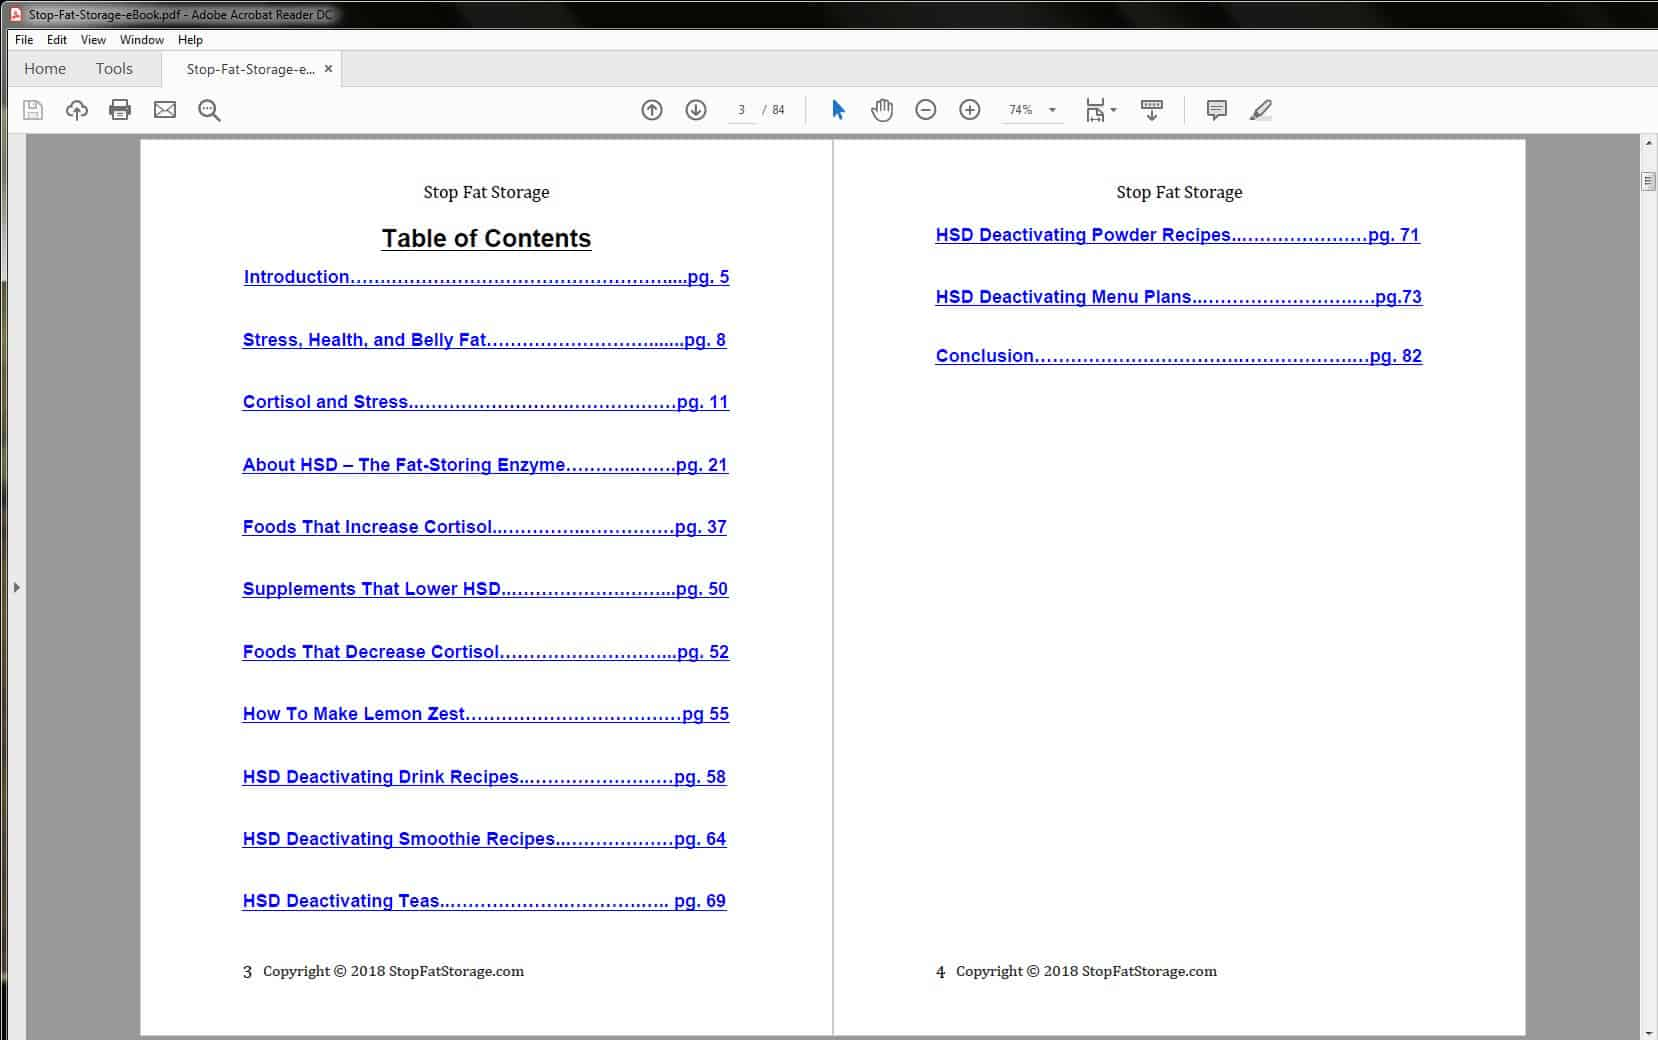 Stop Fat Storage Table of Contents